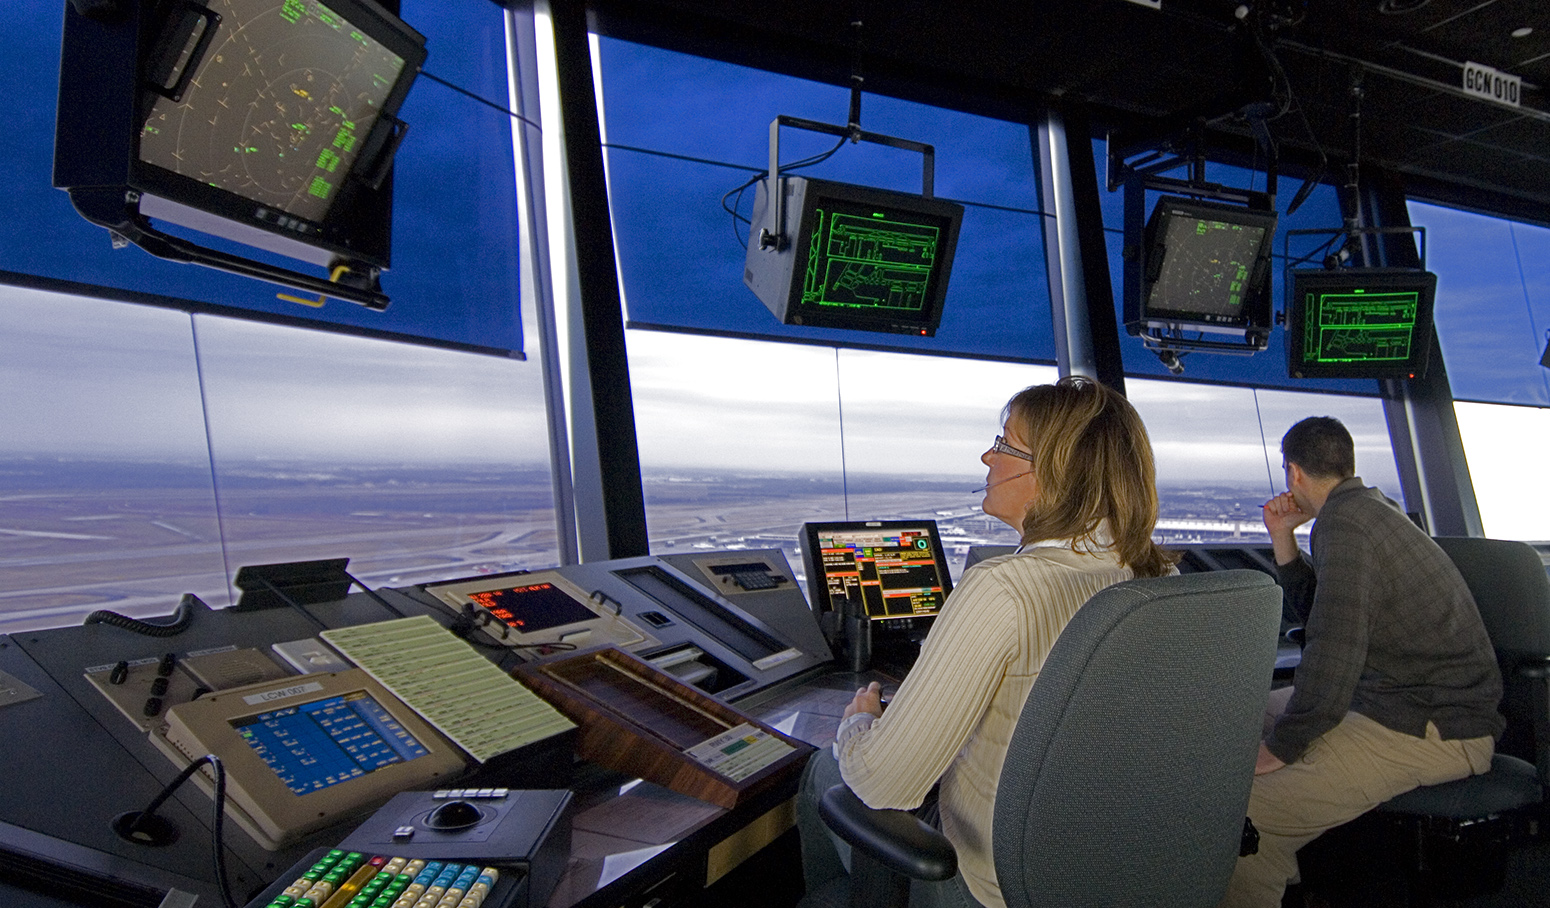 Air traffic controllers at work in control tower